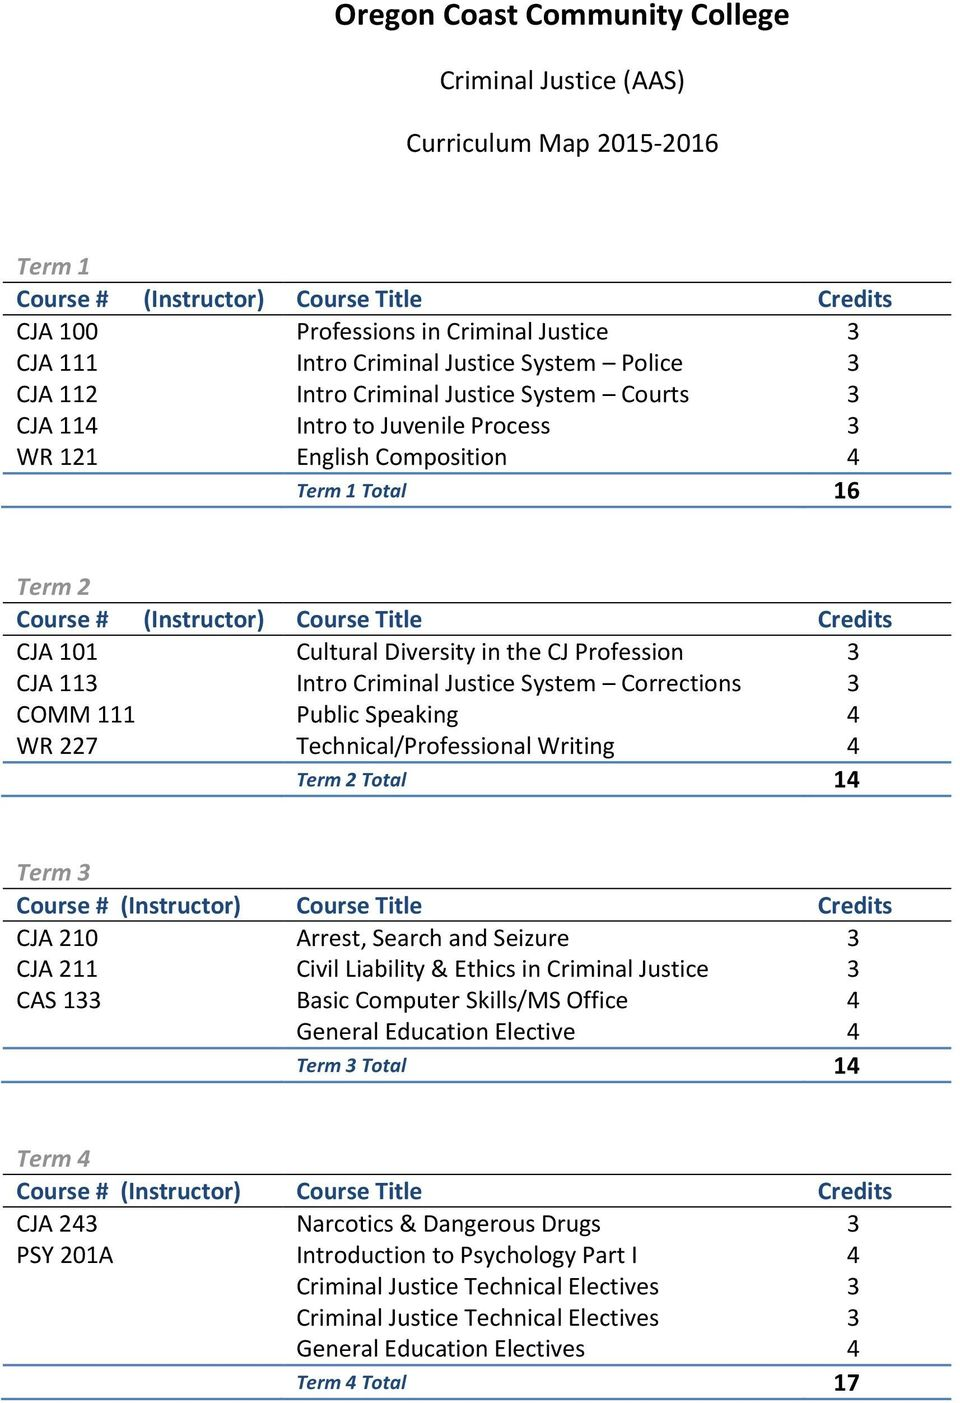 Corrections 3 COMM 111 Public Speaking 4 WR 227 Technical/Professional Writing 4 Term 2 Total 14 Term 3 CJA 210 Arrest, Search and Seizure 3 CJA 211 Civil Liability & Ethics in Criminal Justice 3 CAS